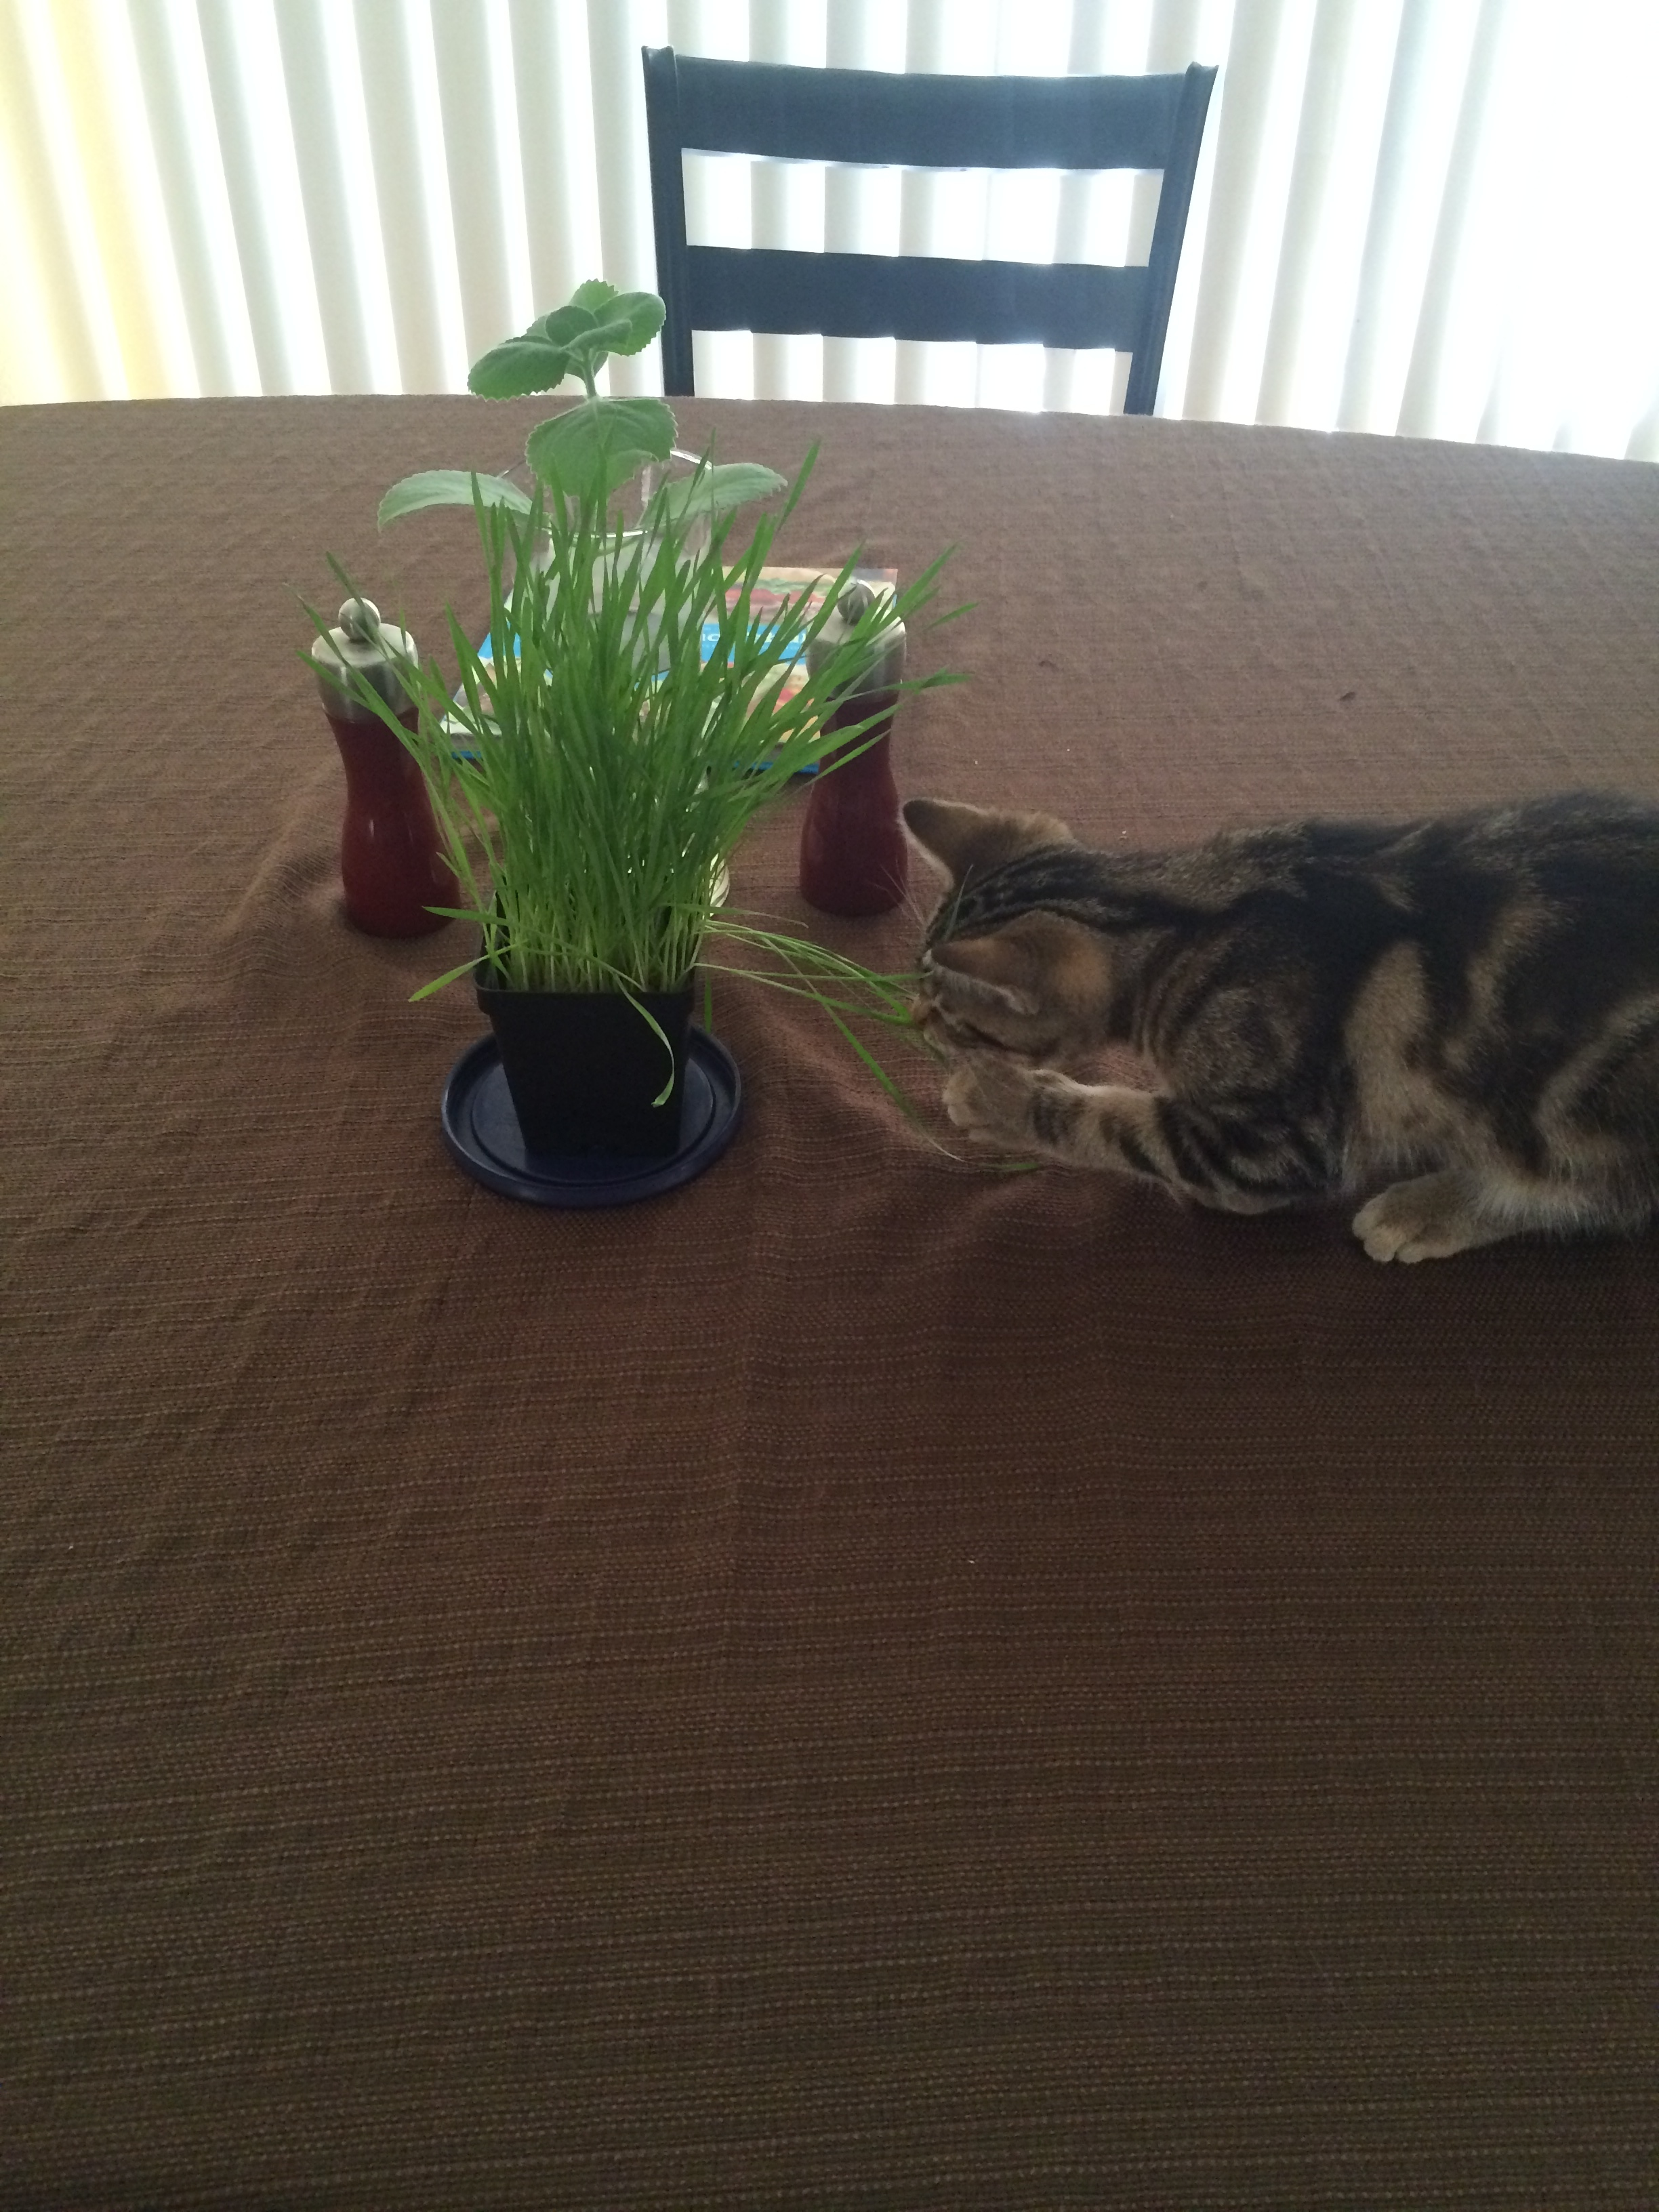 Enjoying some fresh grown cat grass